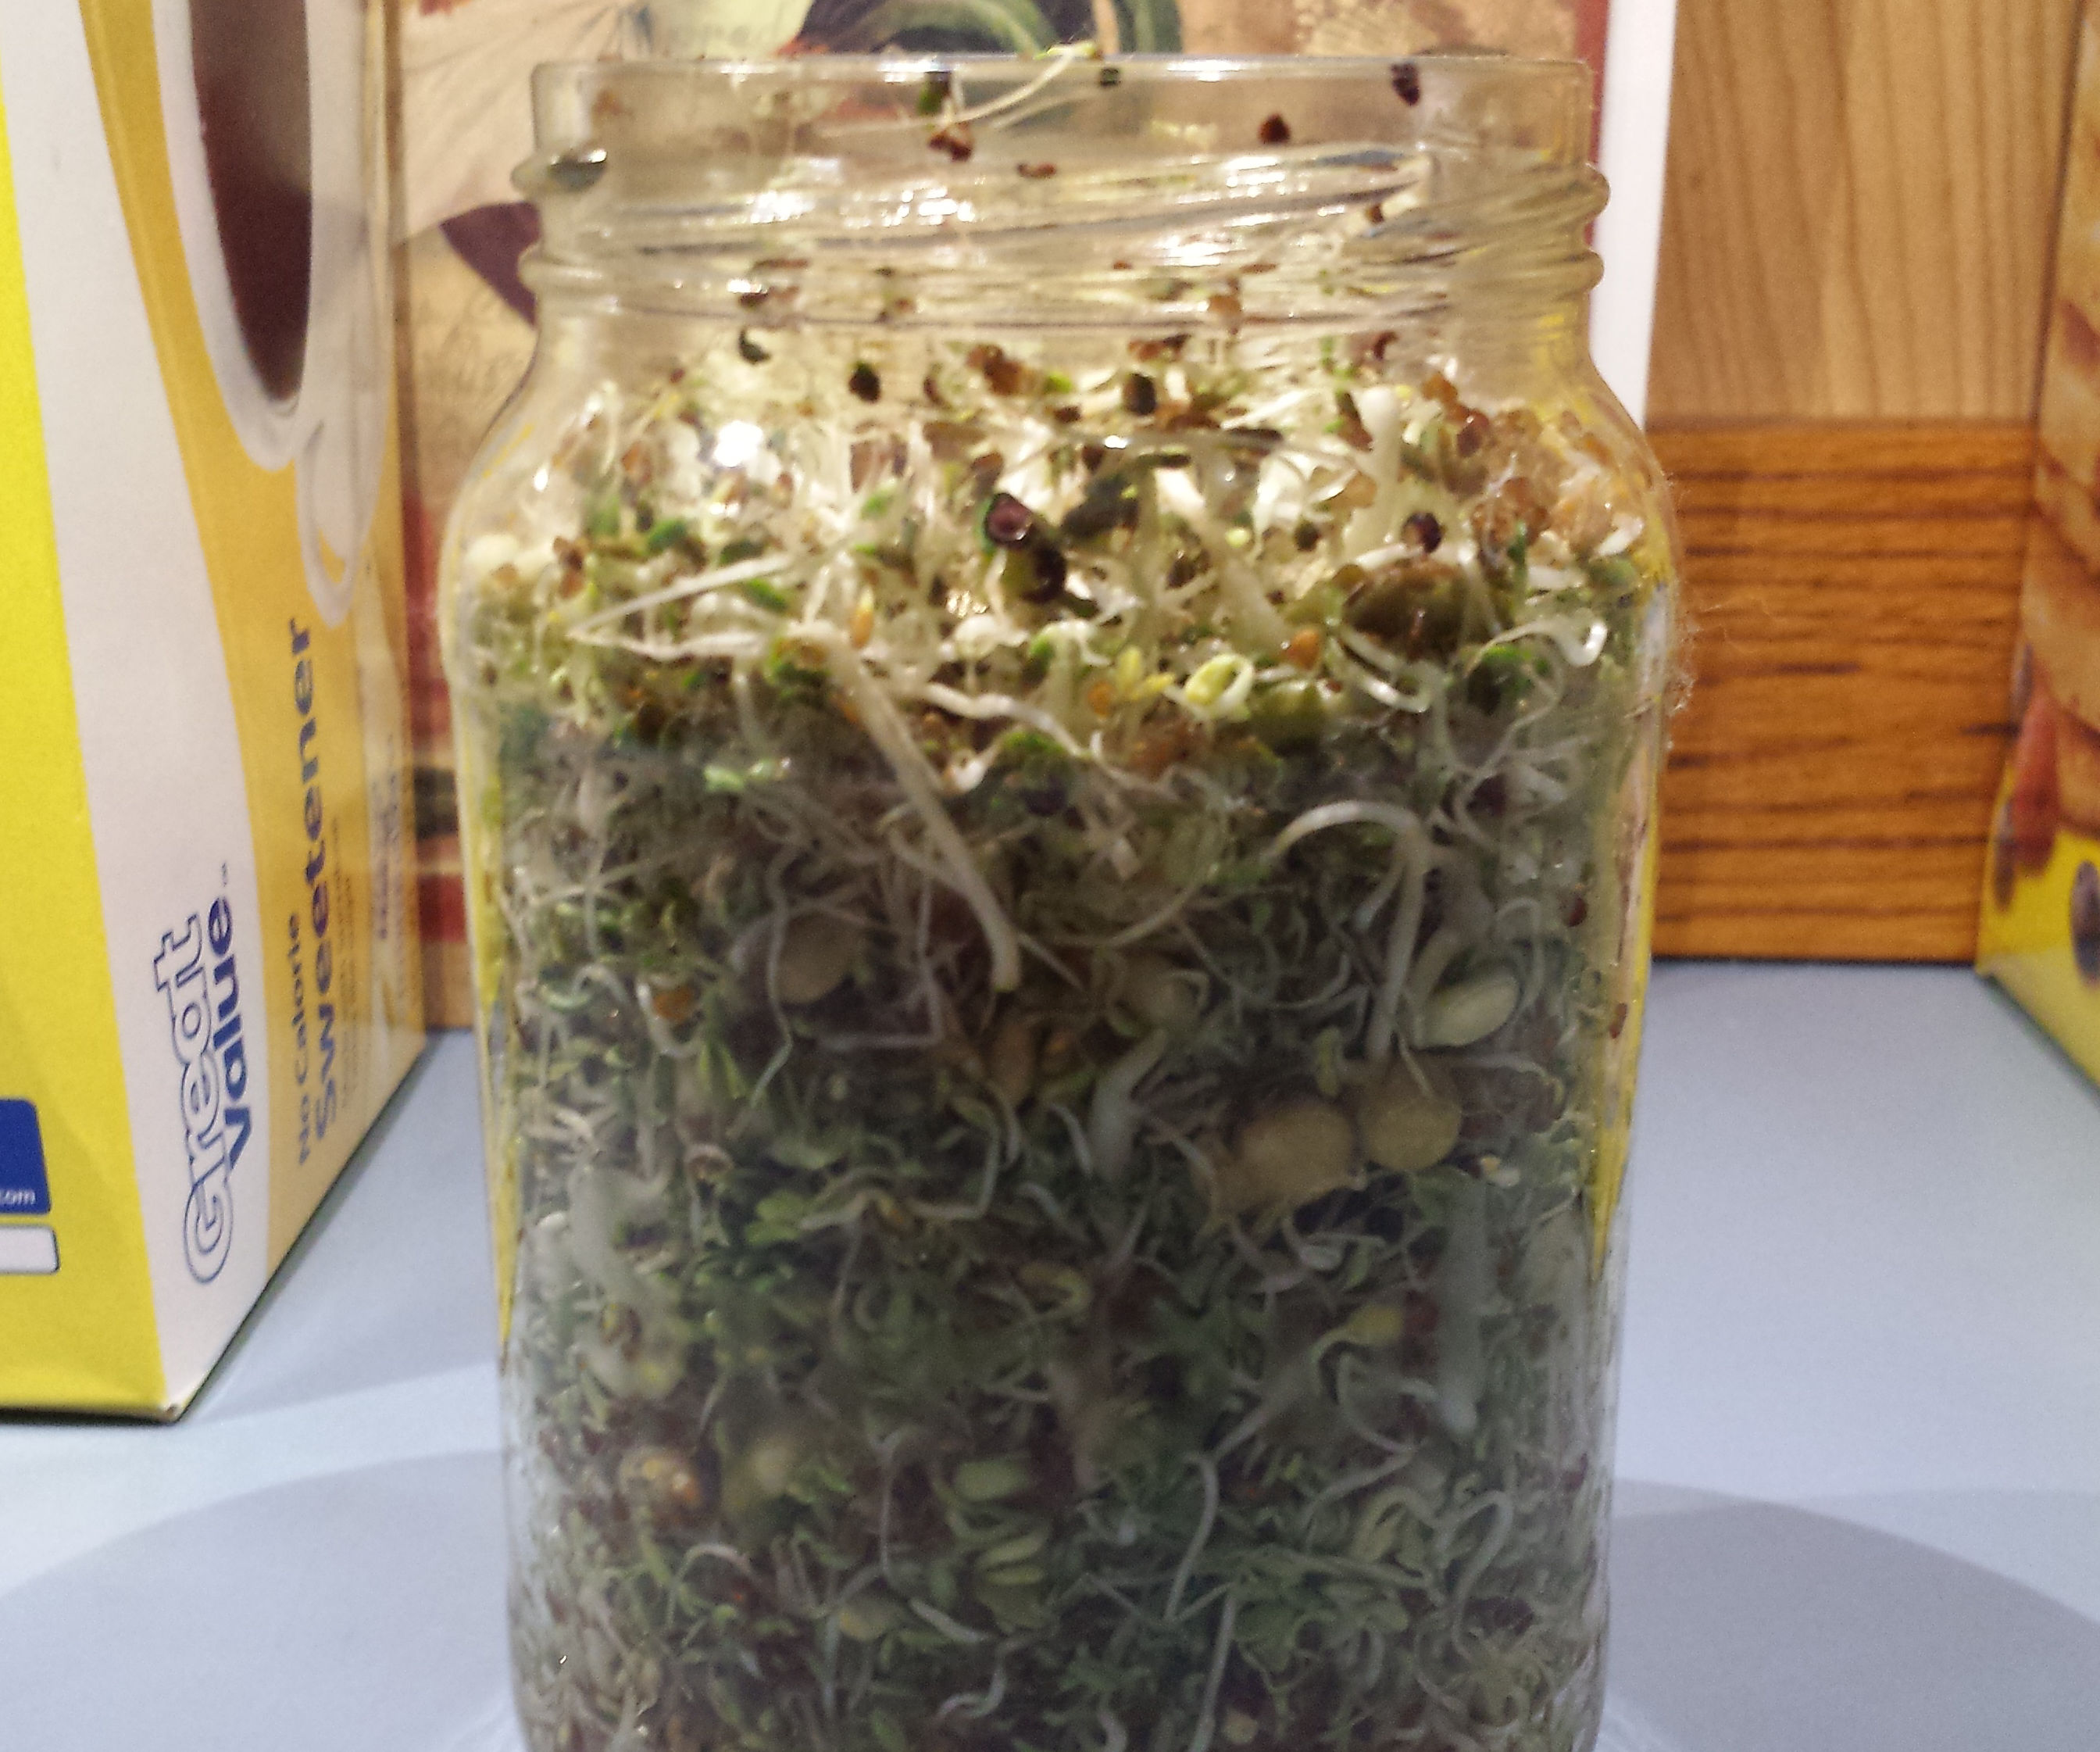 How to grow sprouts in a glass jar